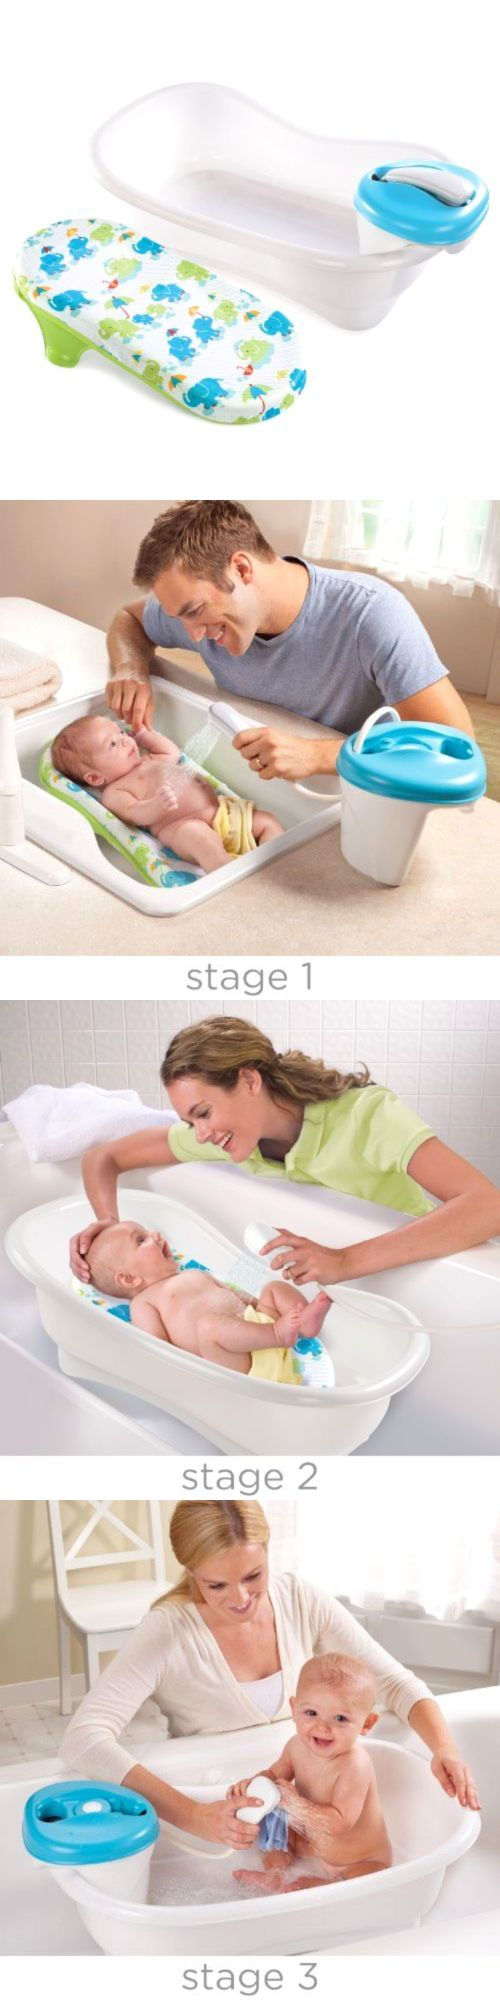 Bath Tubs 113814: Portable Newborn To Toddler Bath Center And Shower 4 Stages Easy Bathing Tub, New -> BUY IT NOW ONLY: $58.32 on eBay!